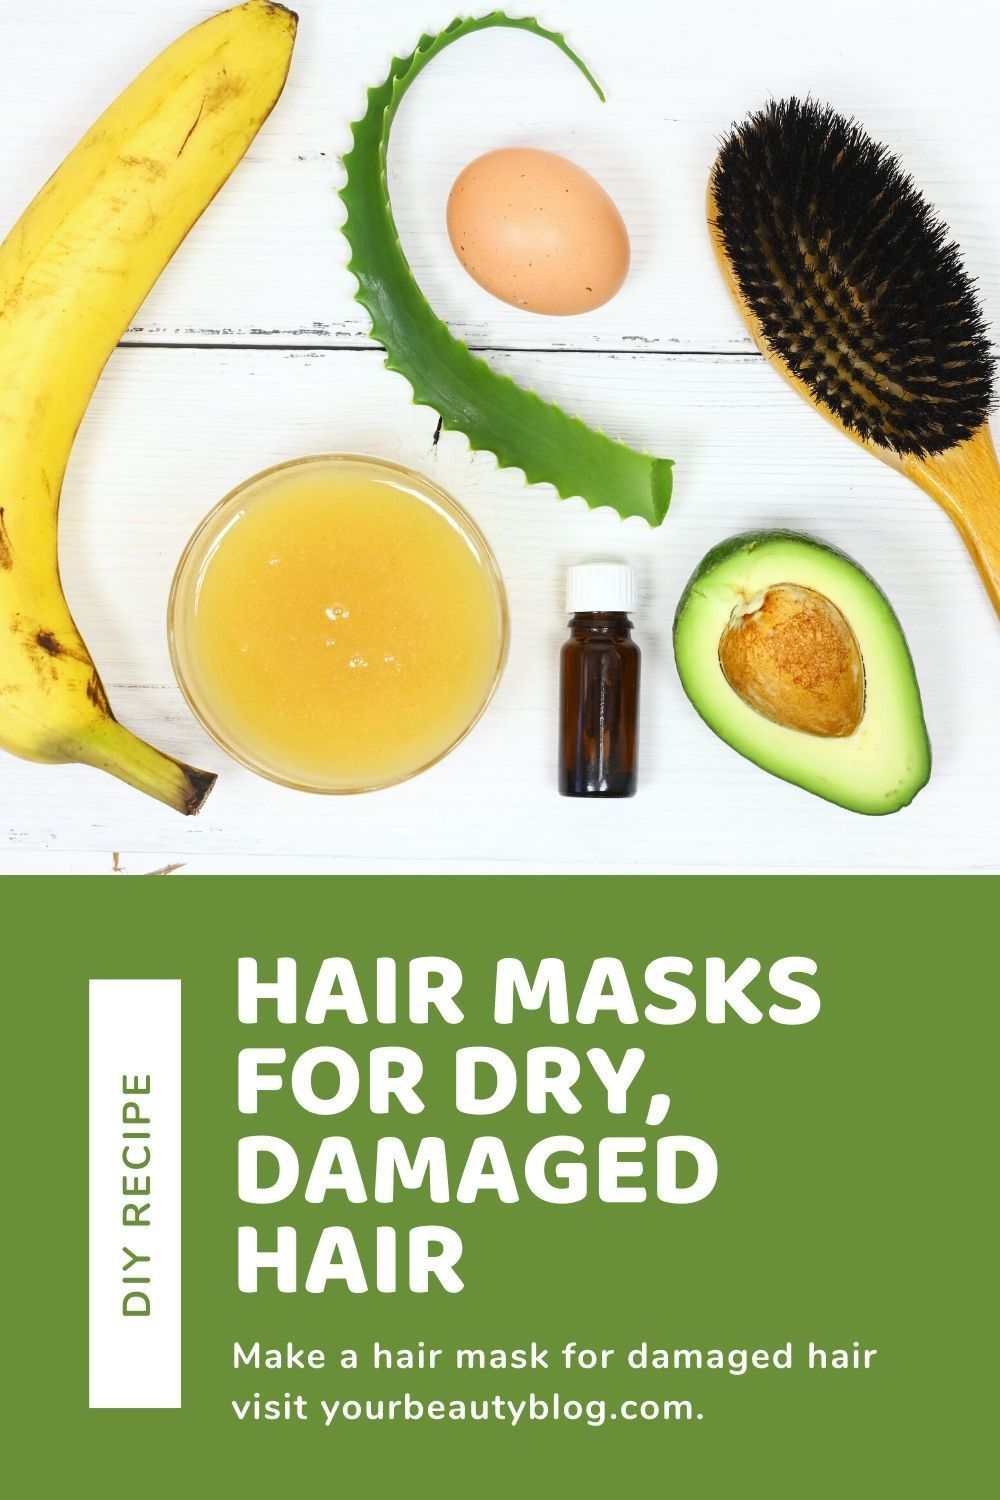 6 Easy Diy Hair Masks For Dry Damaged Hair Hair Mask For Damaged Hair Diy Hair Mask For Dry Hair Homemade Hair Products